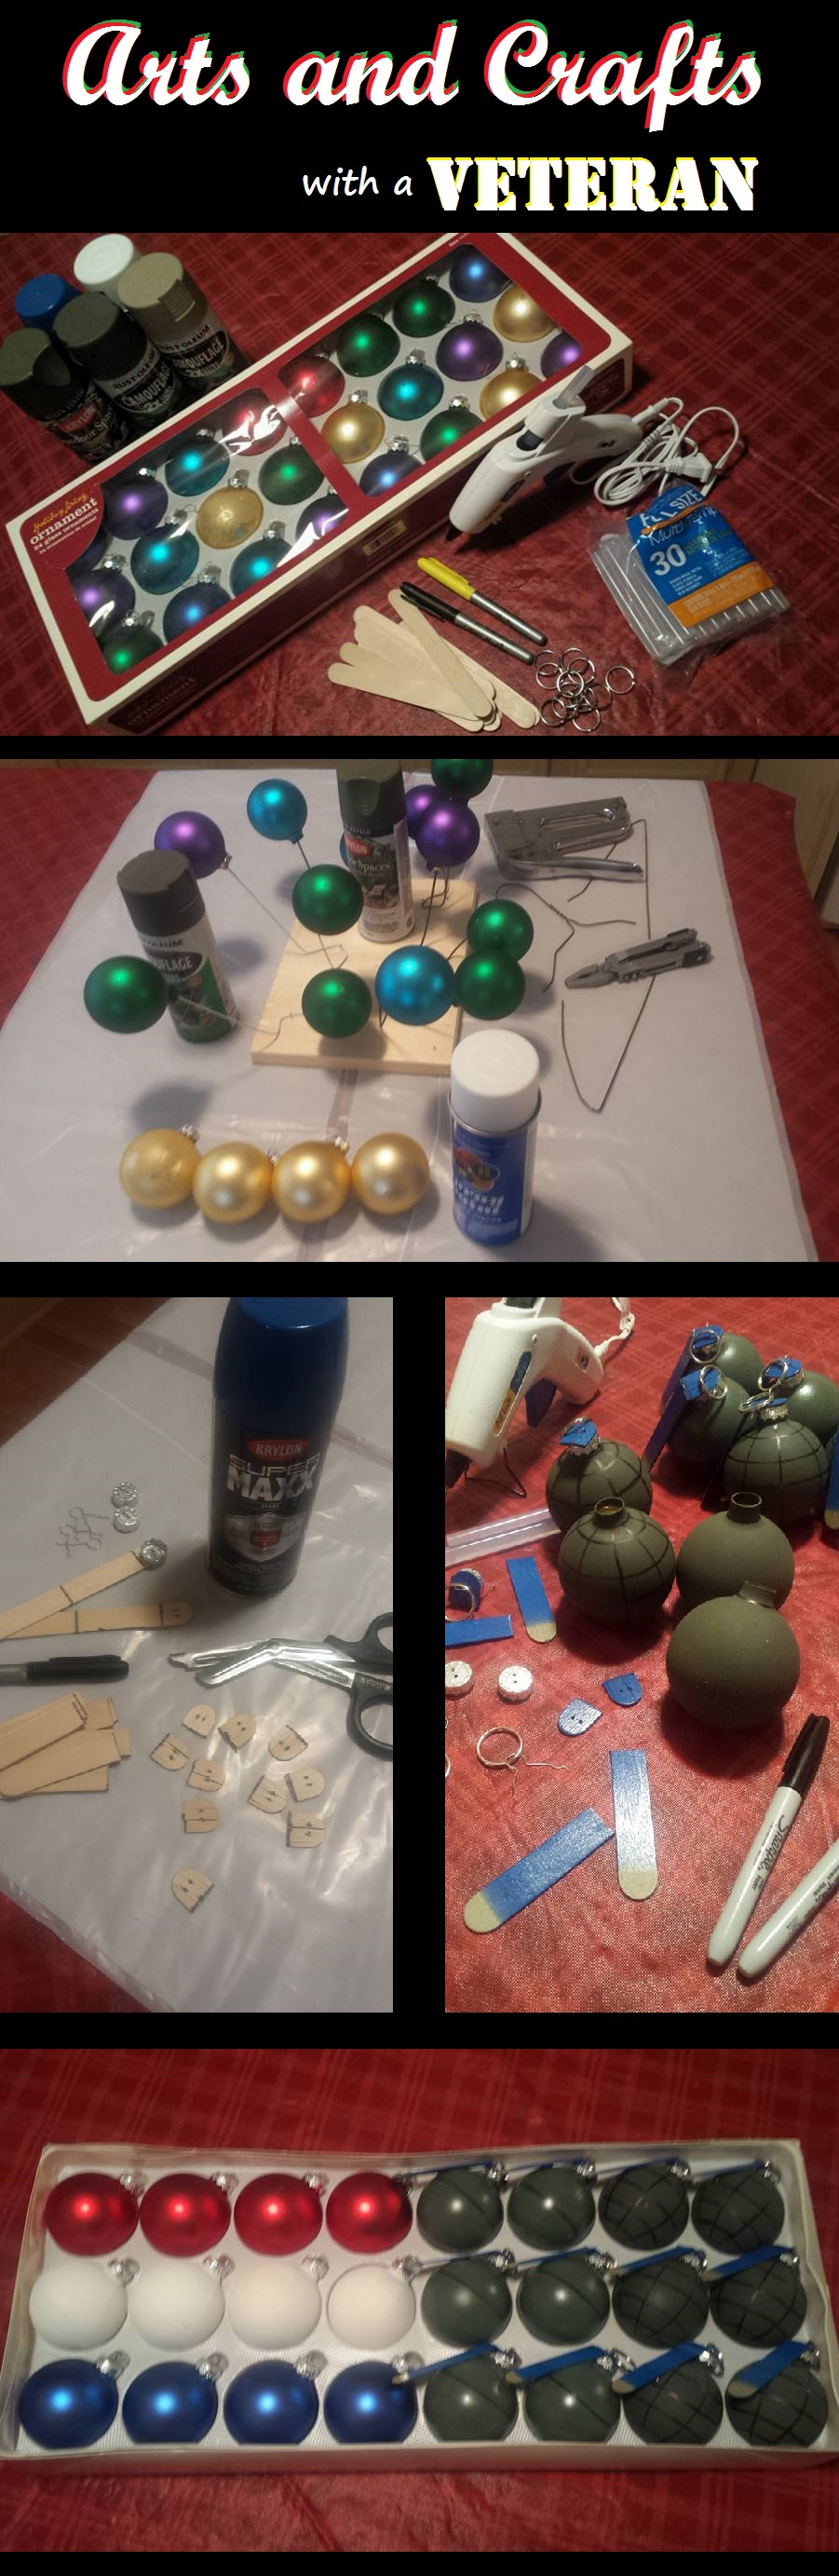 Arts and Crafts with a Veteran